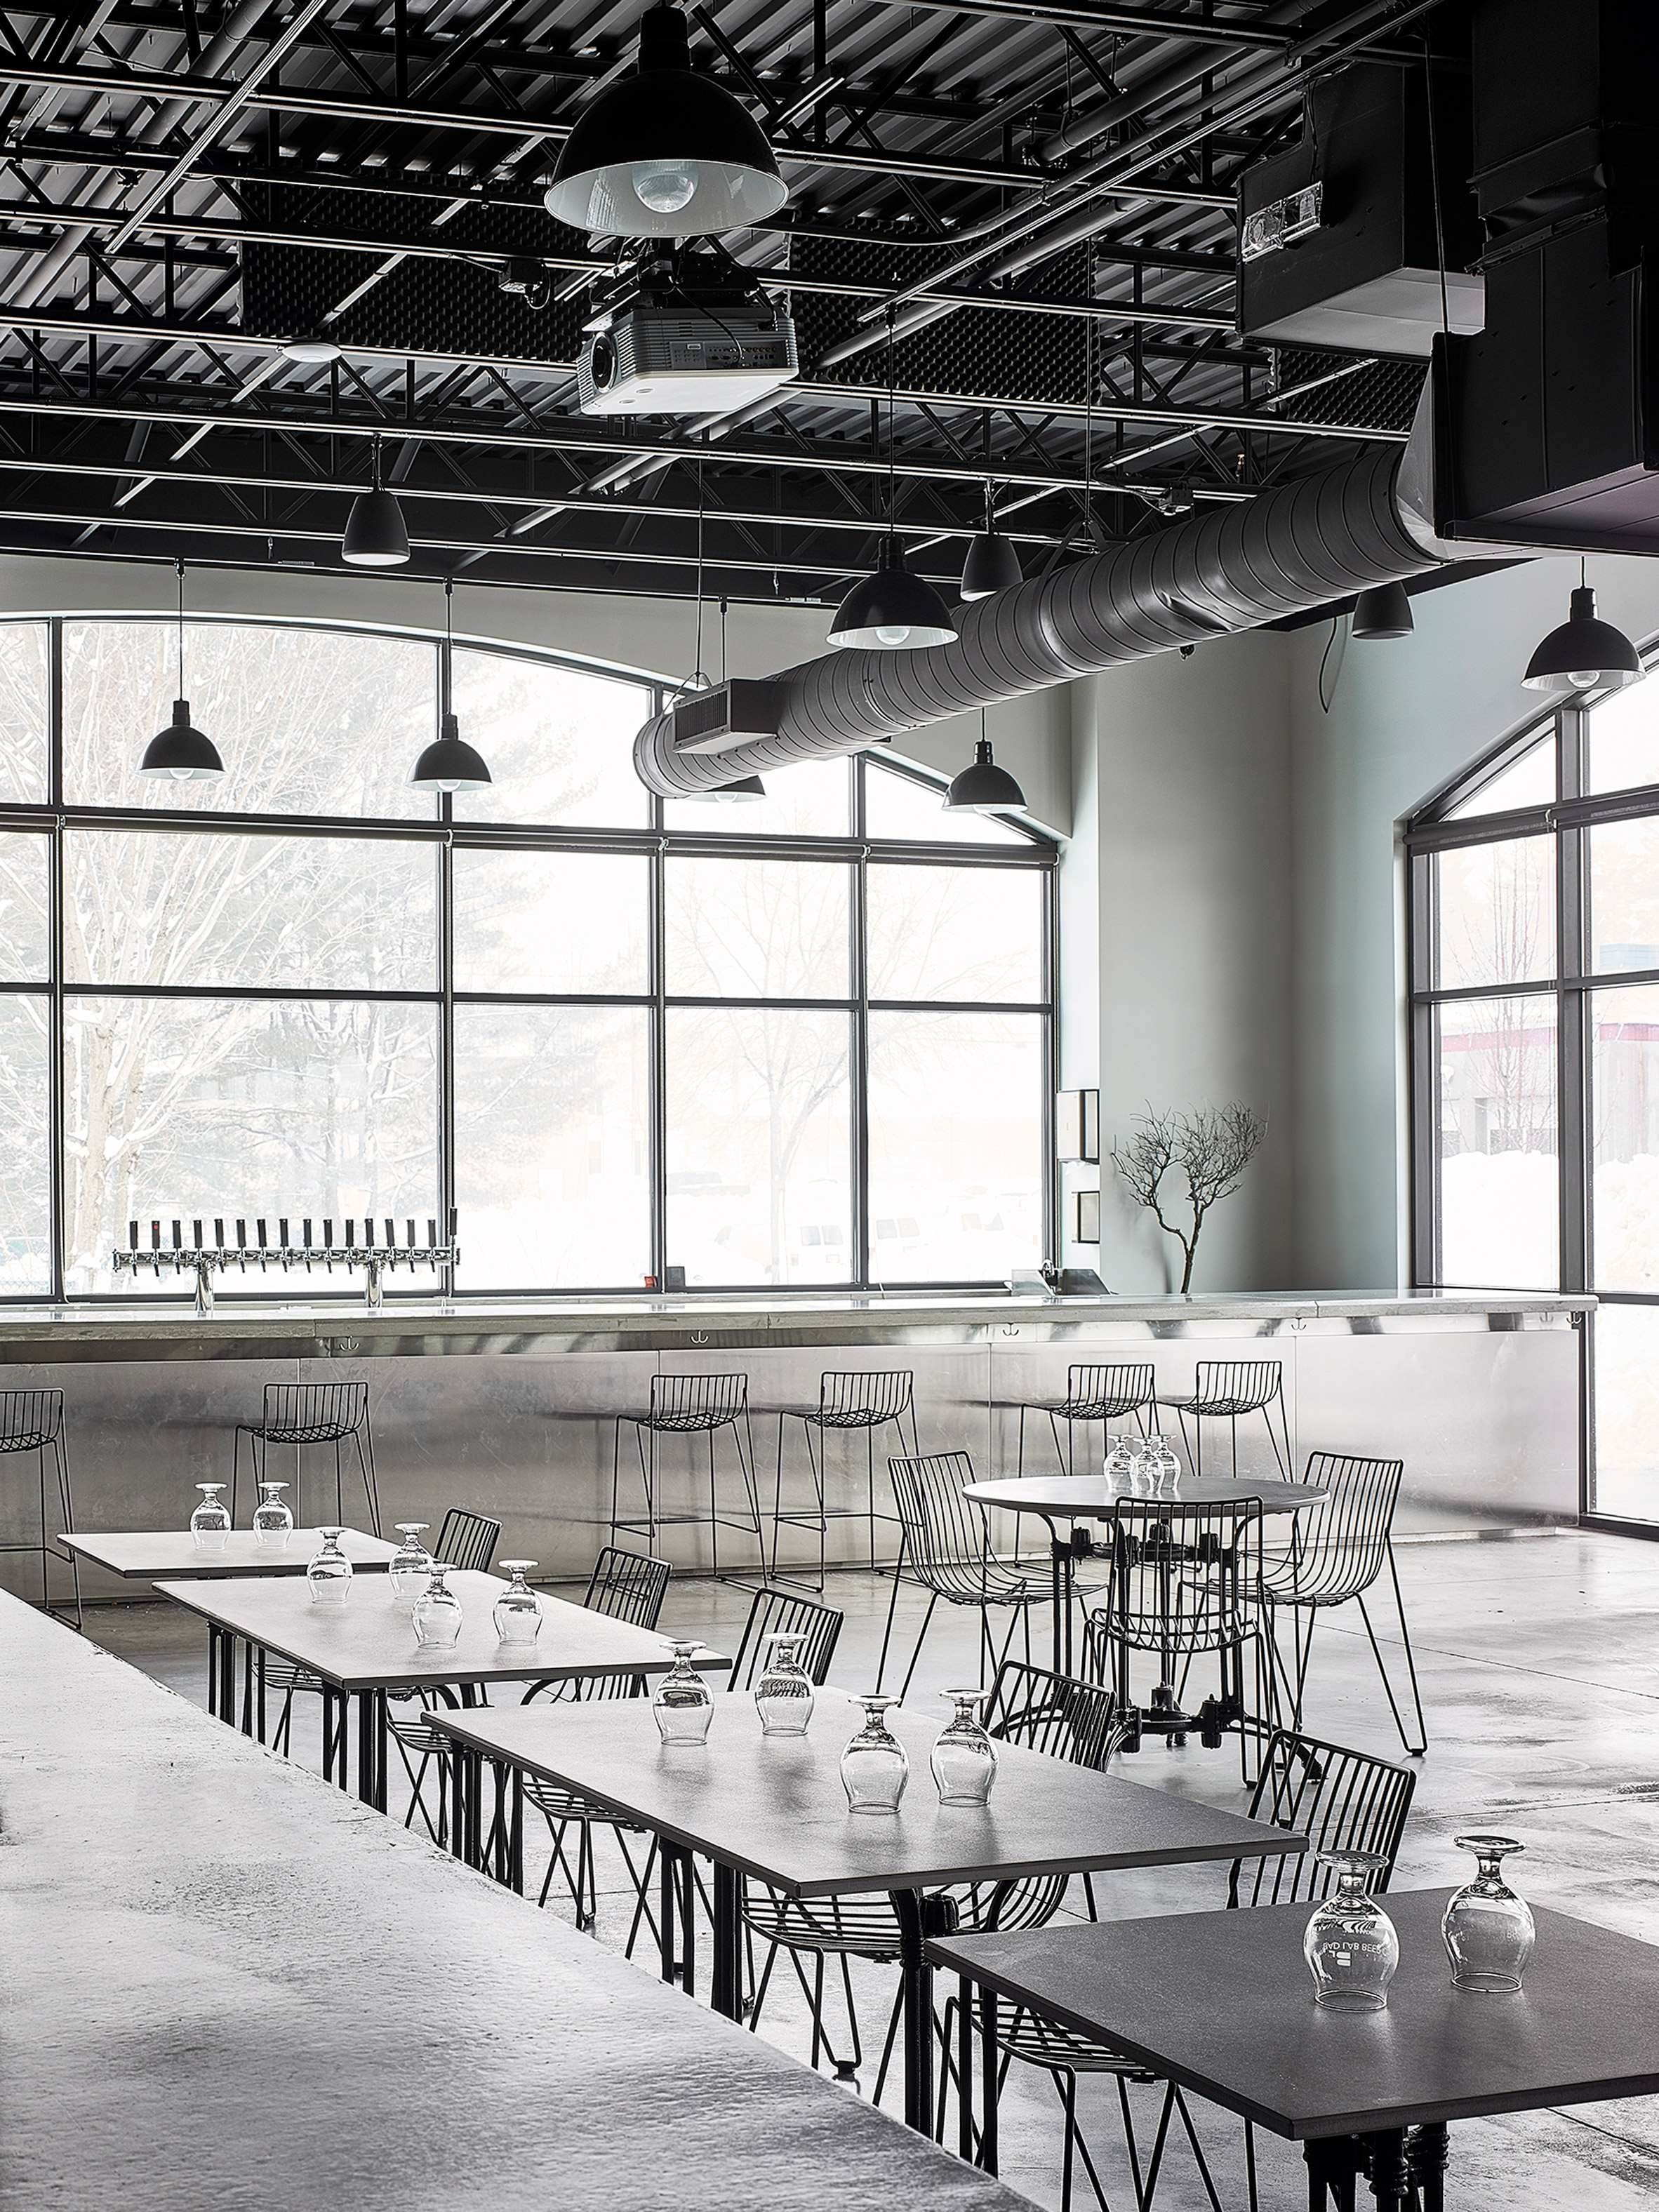 Bad Lab Beer Co brewery in New Hampshire features steely interiors by Richard Lindvall